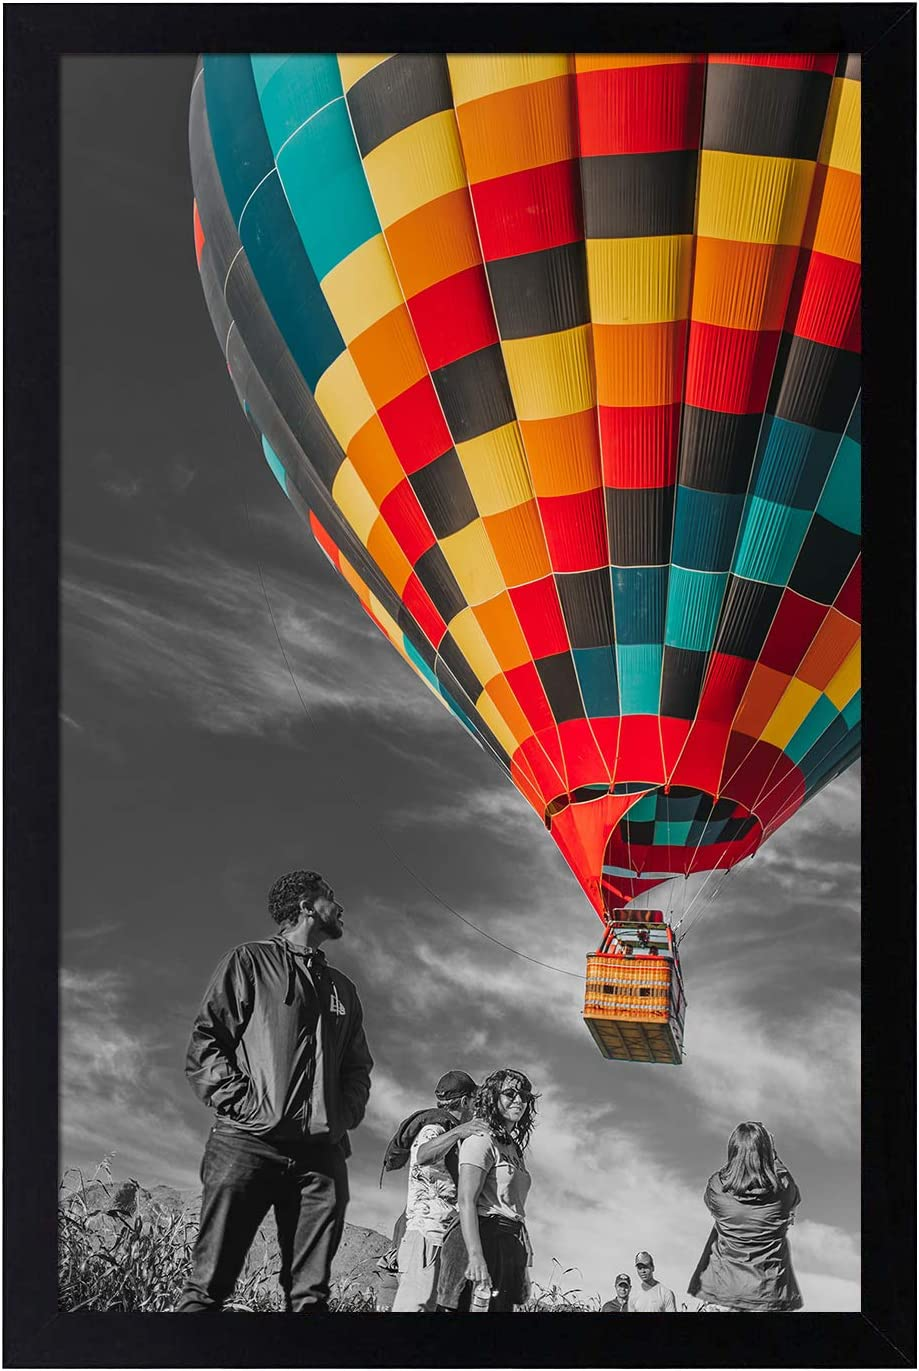 Golden State Art, 11x17 Inch Poster Frame - Black - Landscape/Portrait - Swivel Tabs - Simple and Stylish